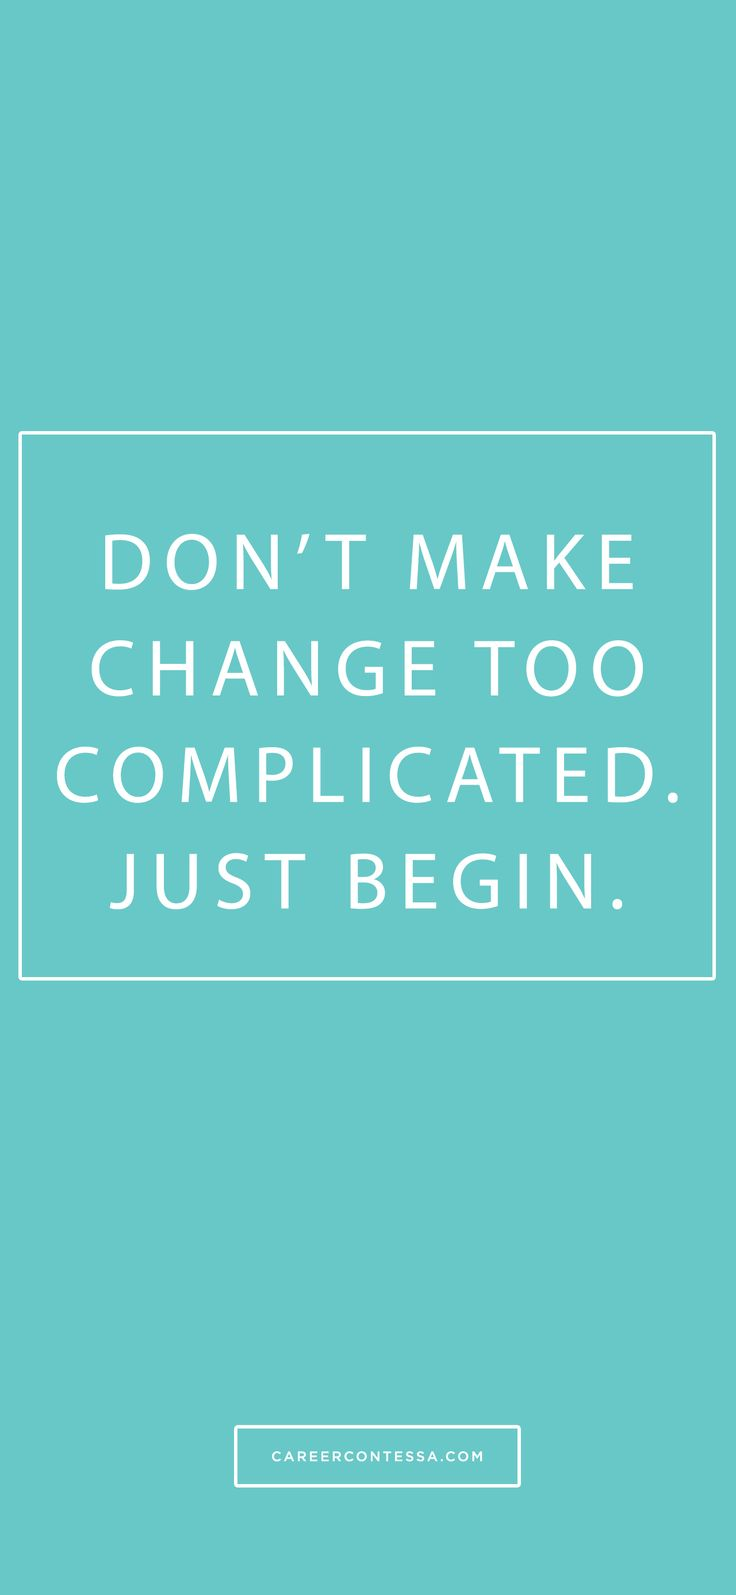 Just begin. #ContessaQuotes